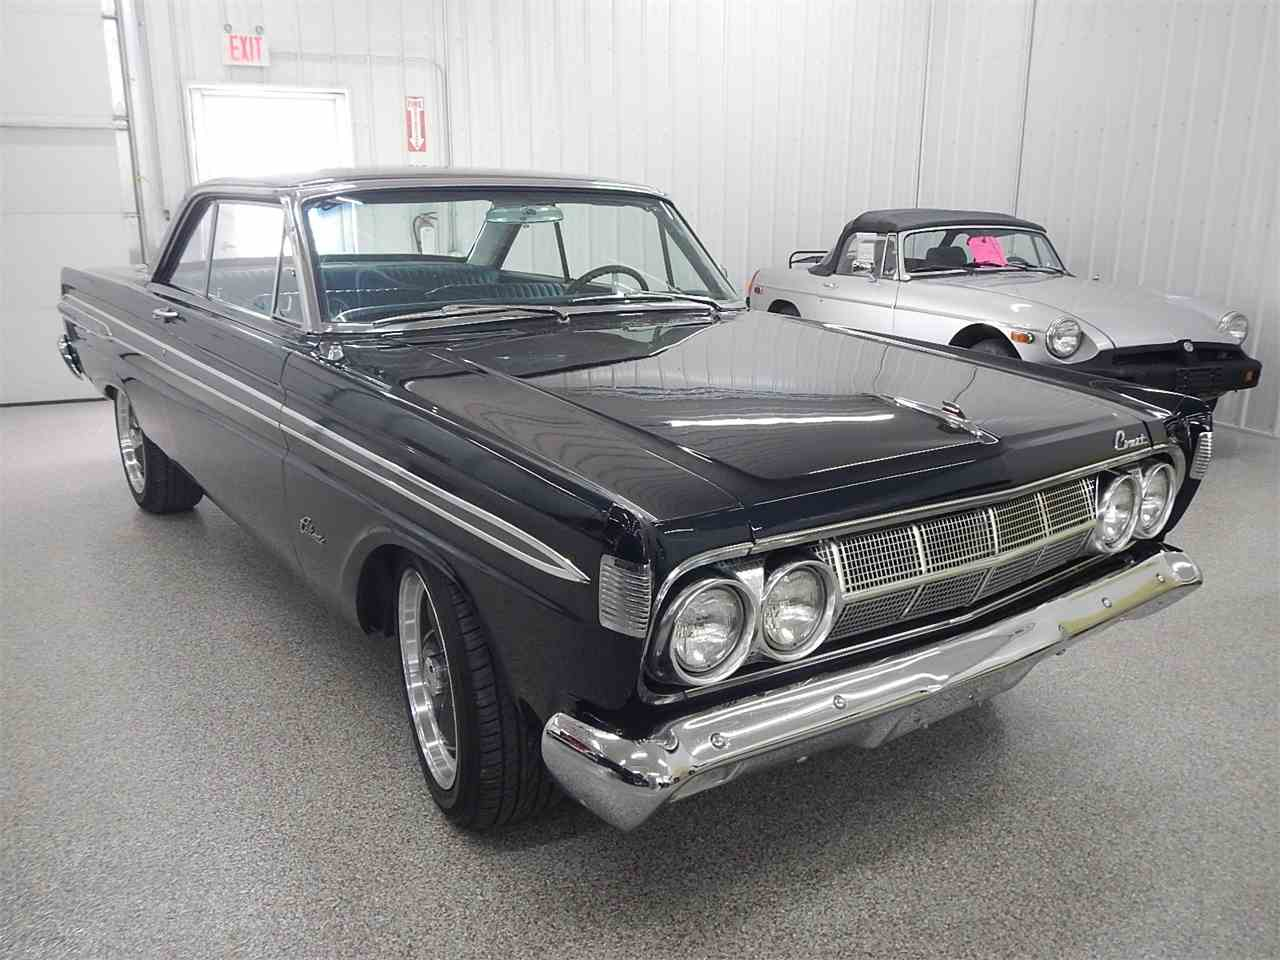 Large Picture of Classic '64 Mercury Comet Caliente Offered by Custom Rods & Muscle Cars - MDSA